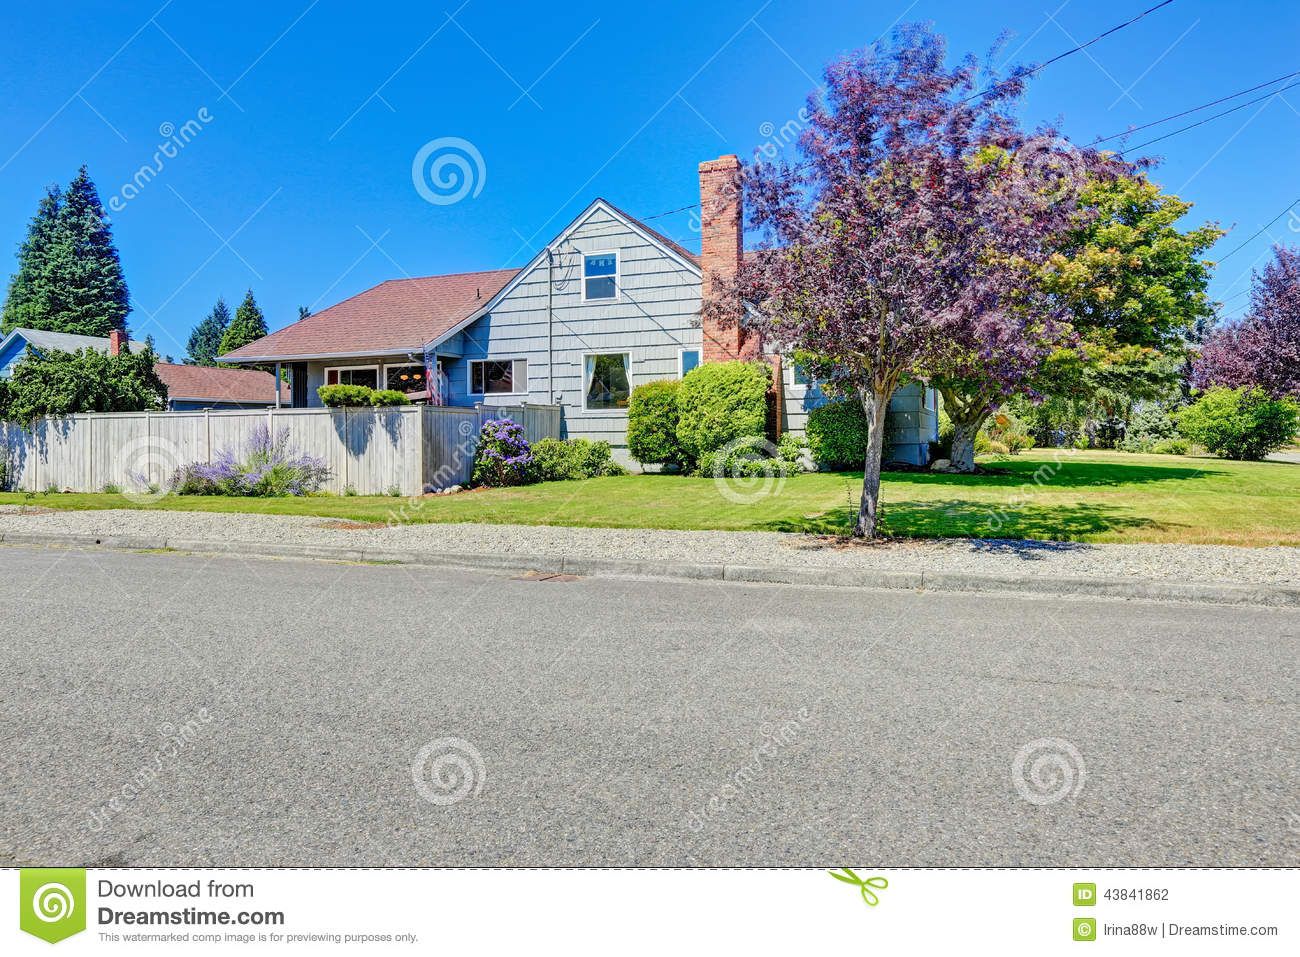 House exterior with brick chimney front yard view stock for Simple house front view